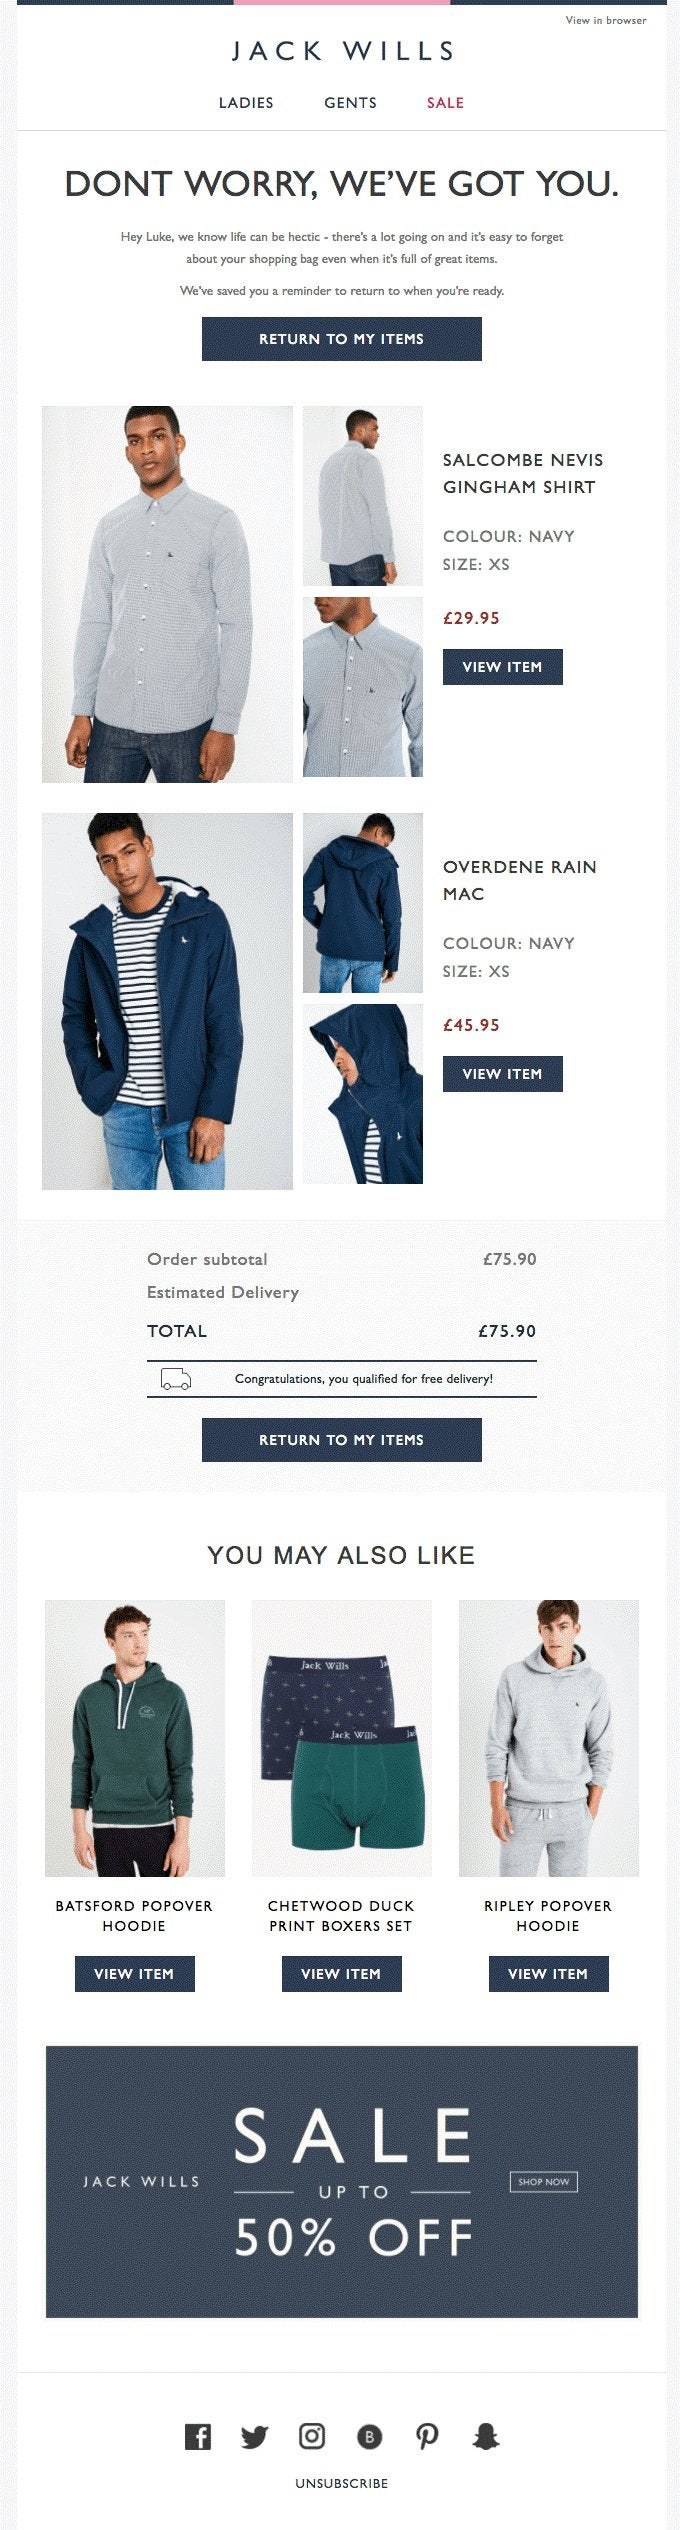 Jack Wills' cart abandonment email